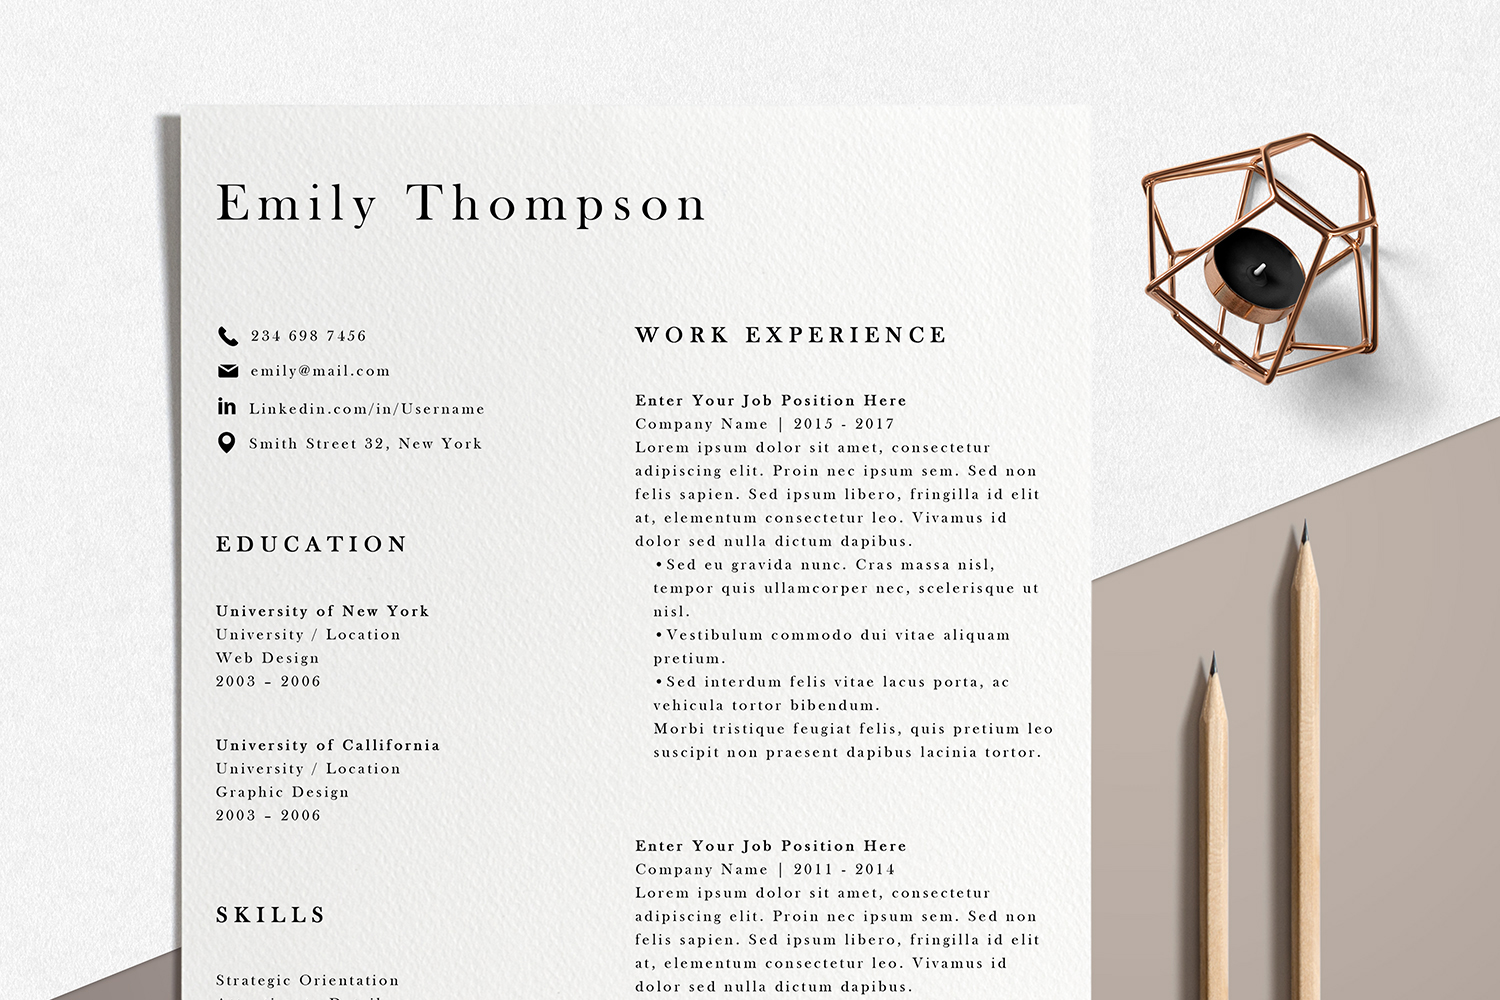 Resume Template | Photoshop CV Template - Emily example image 1